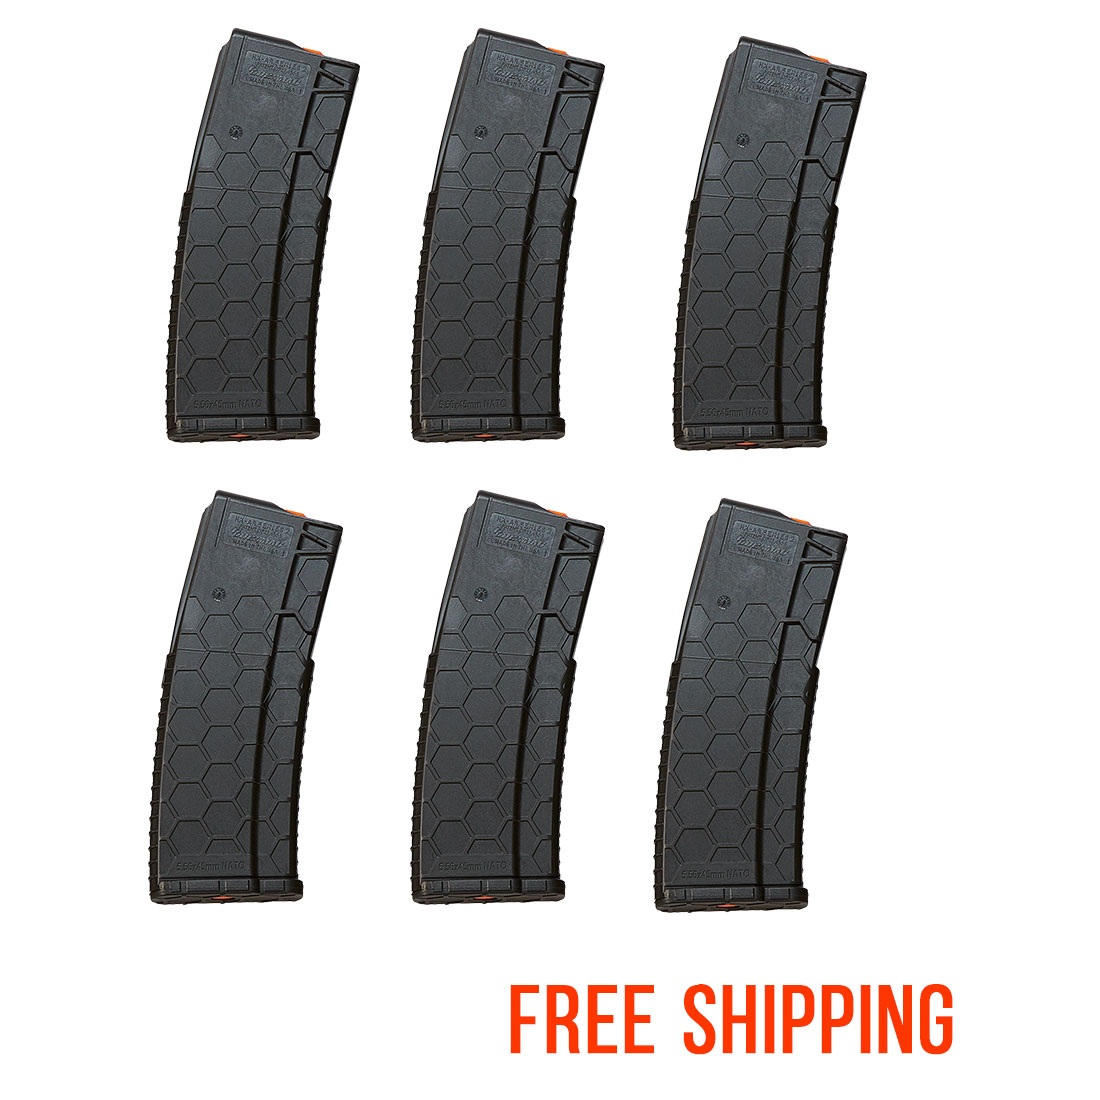 6 Pack of Hexmag Series 2 AR-15 .223/5.56 30-Round Magazine